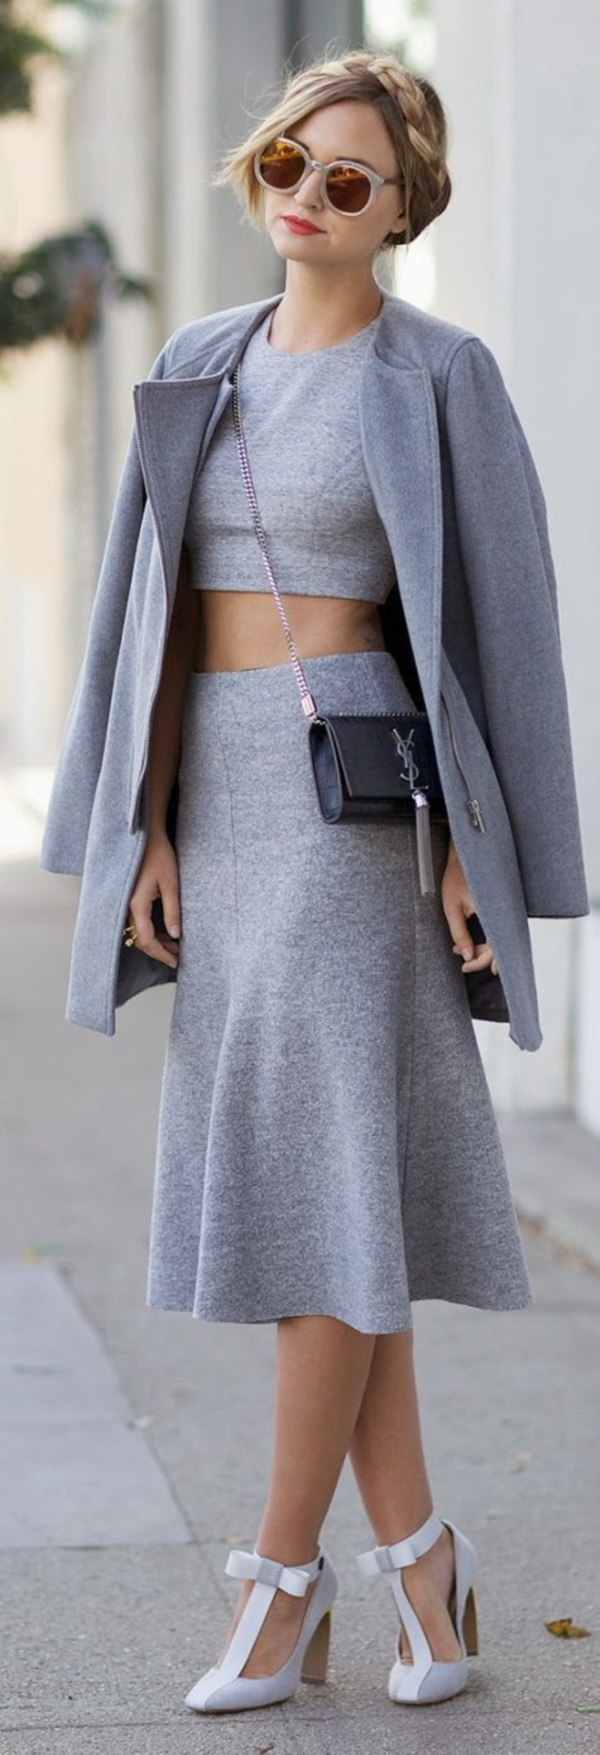 grey skirt outfit (71)